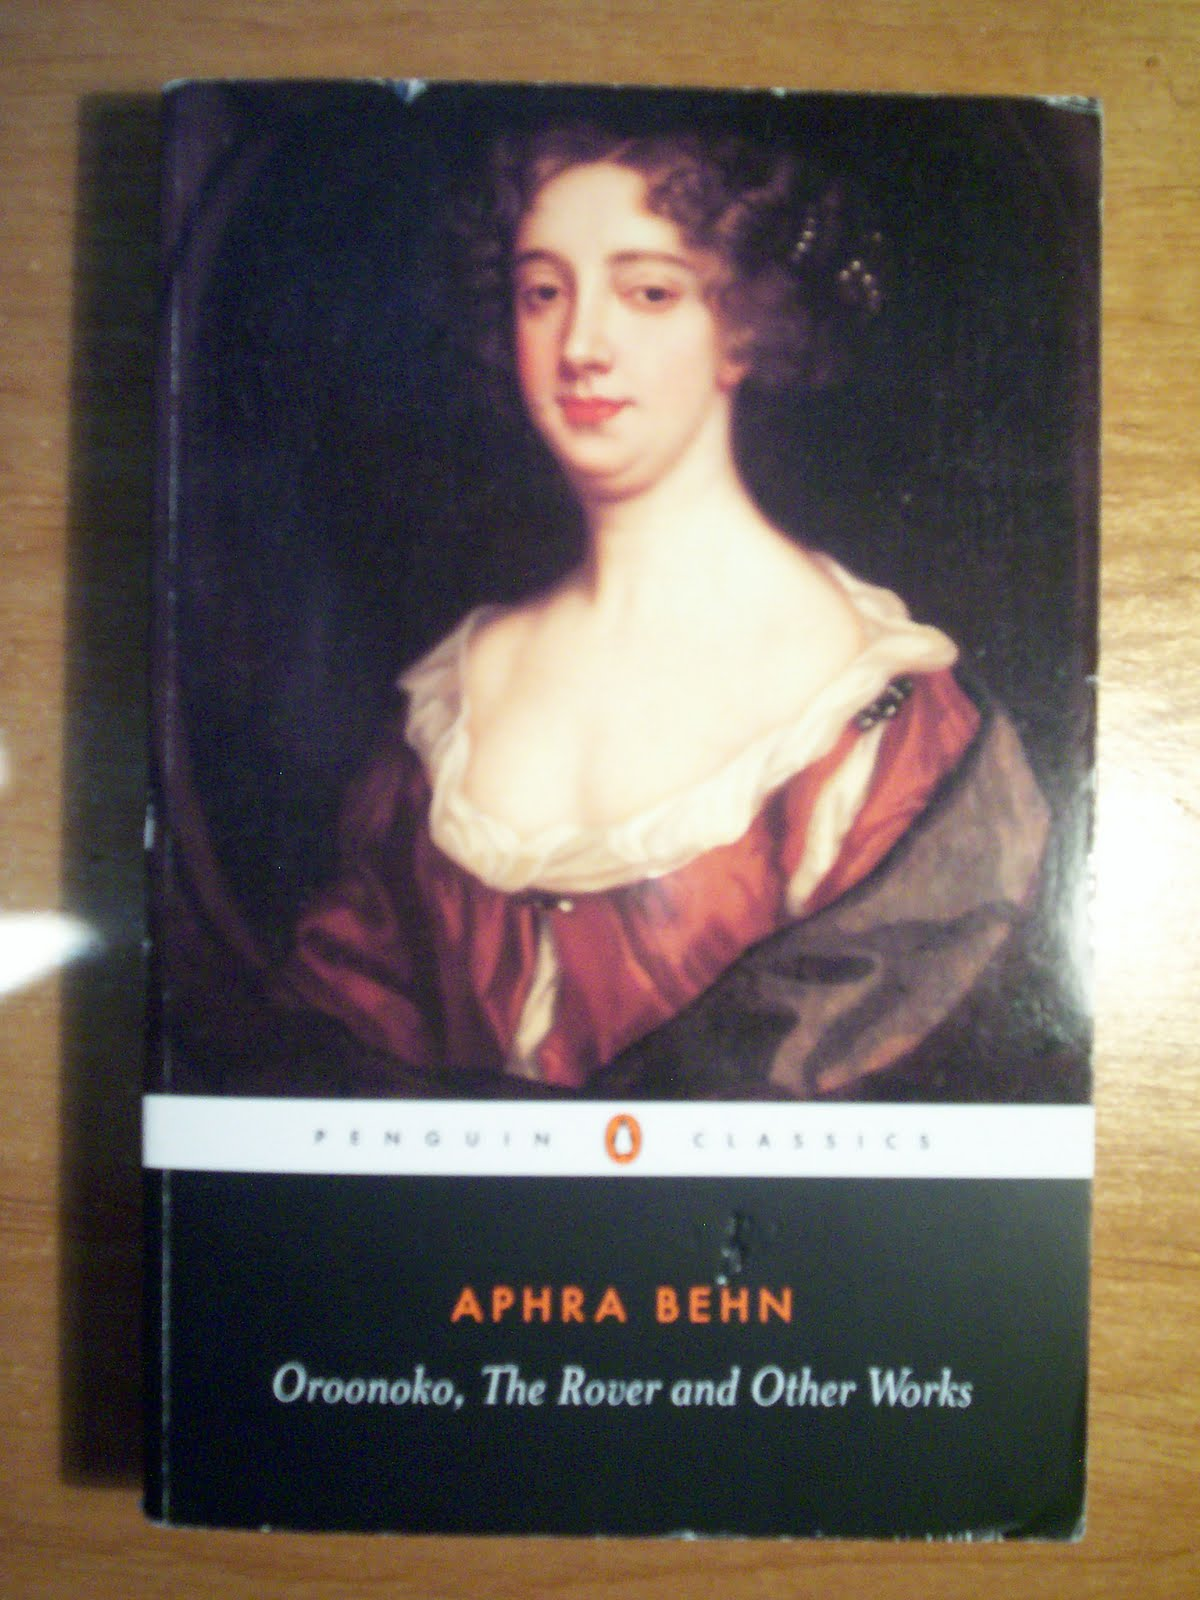 aphra behn 'all women together ought to let flowers fall upon the tomb of aphra behn, which is, most scandalously but rather appropriately, in westminster abbey, for it was she.